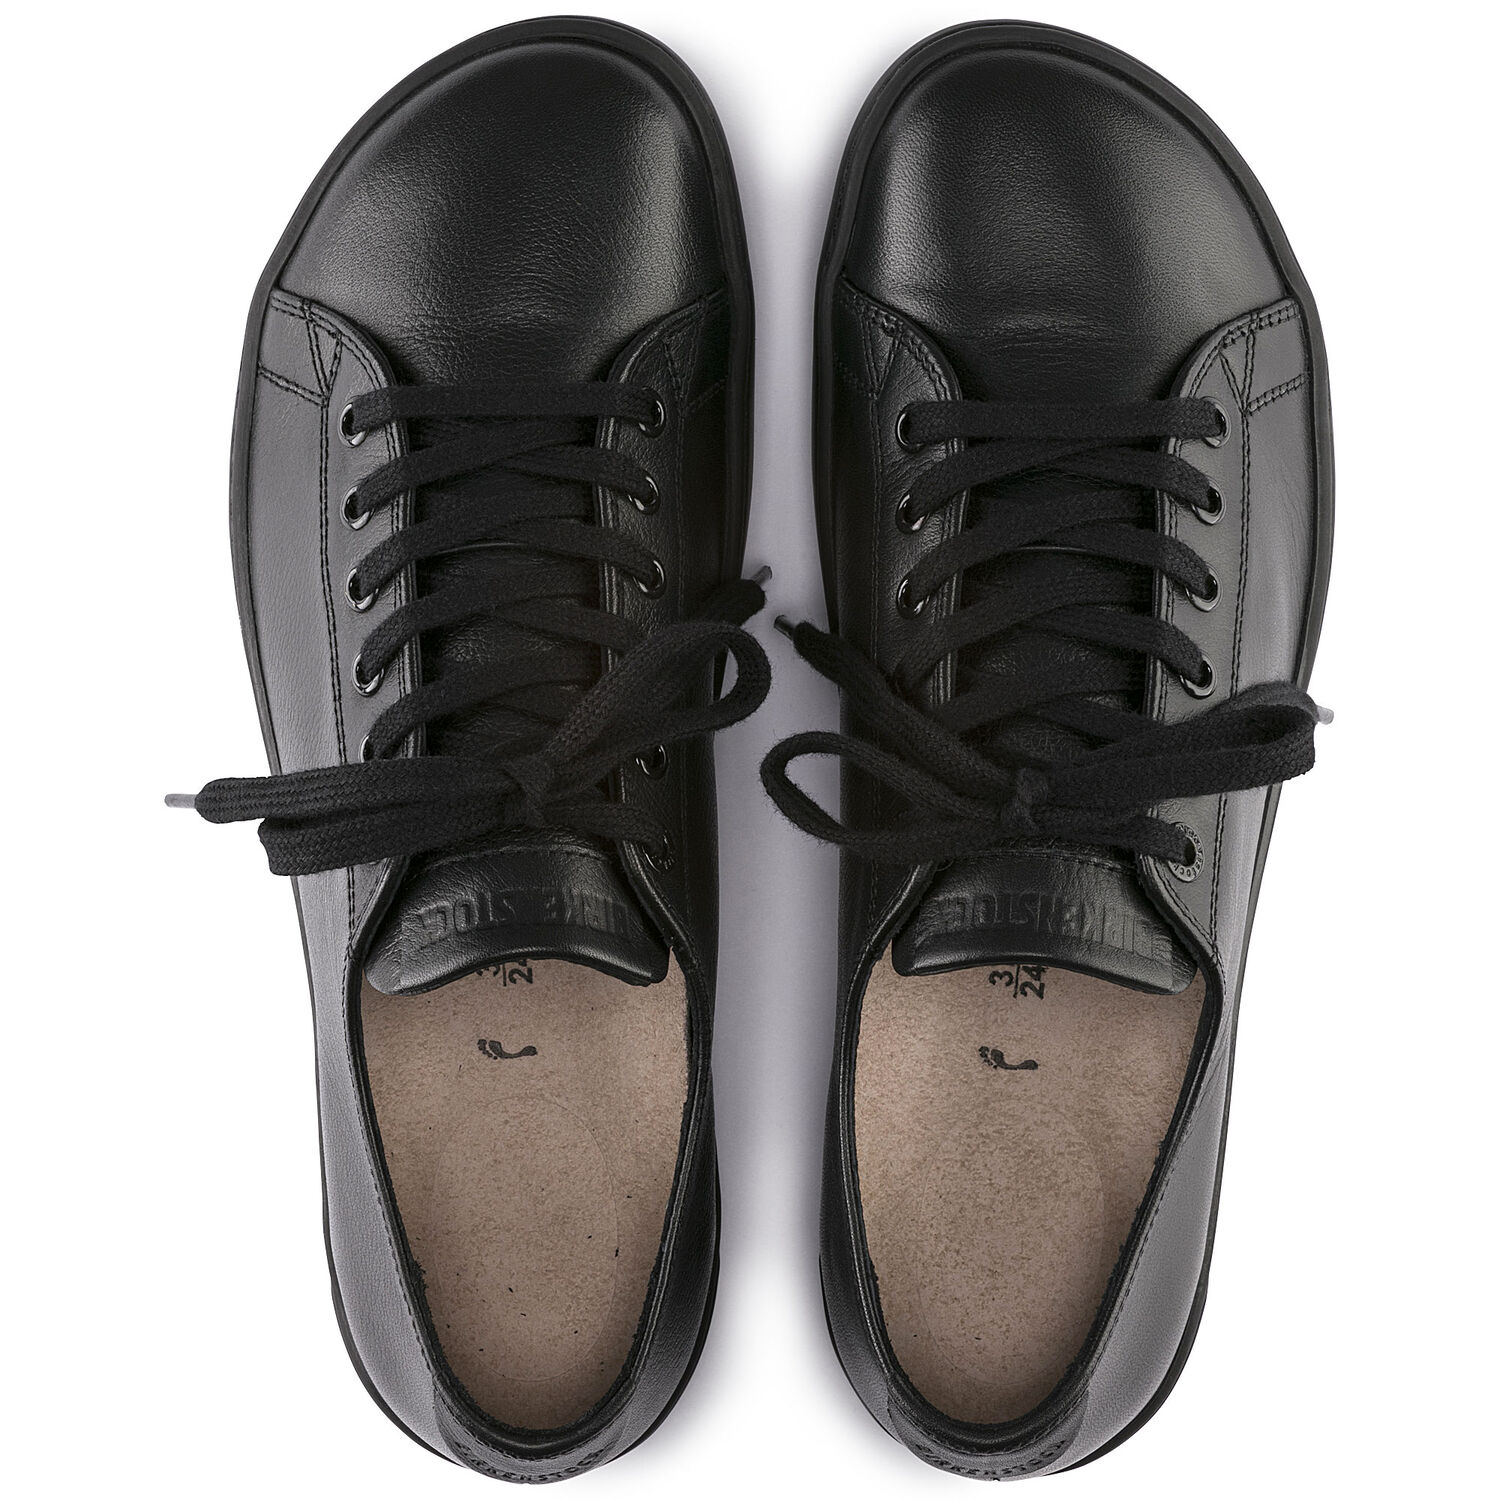 Arran Natural Leather